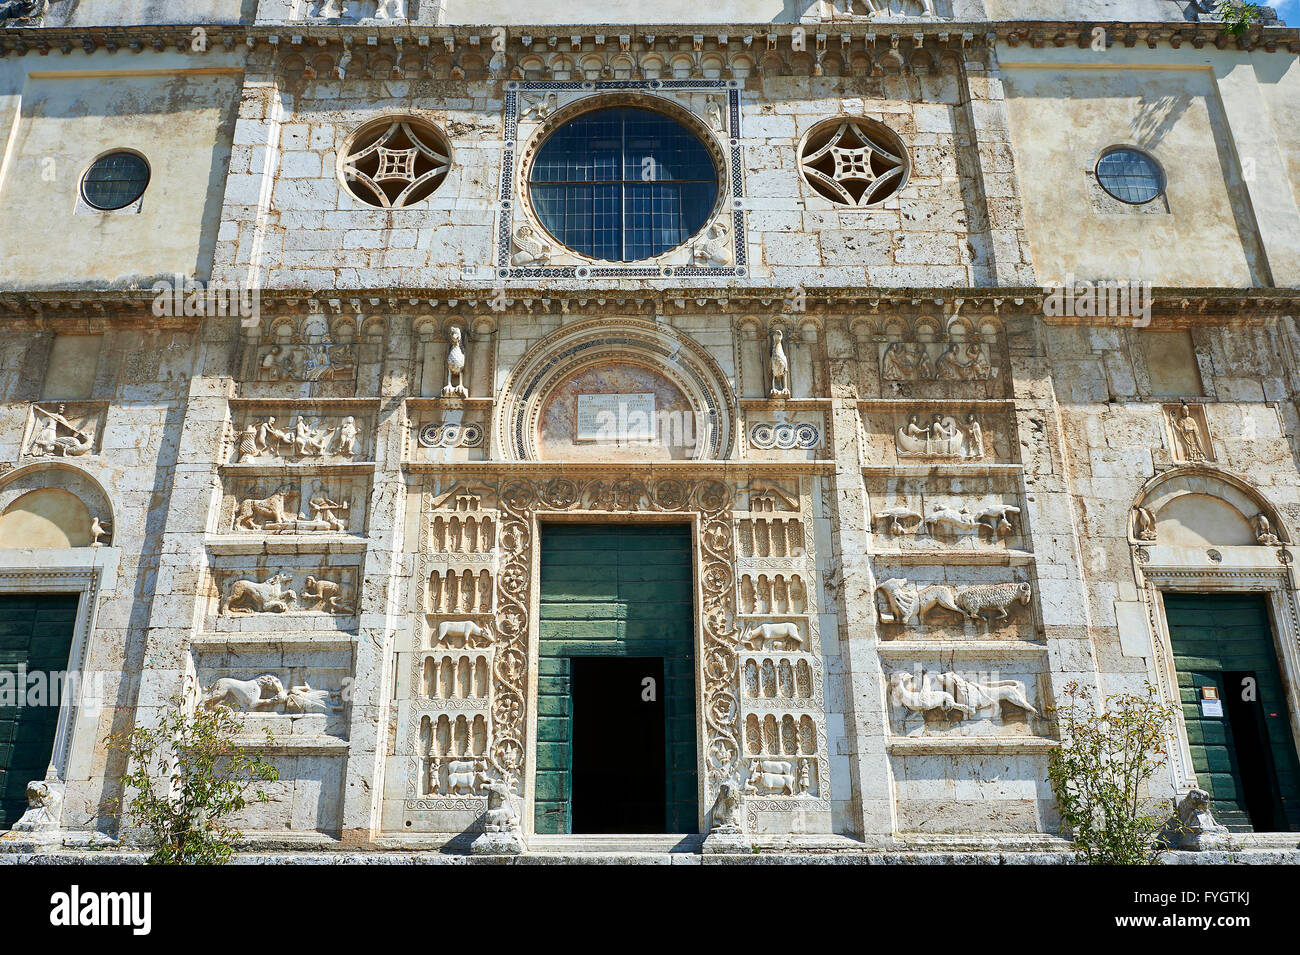 Facade  of  the 12th century Romanesque facade of the Chiesa di San Pietro extra moenia (St Peters), Spoleto, Italy - Stock Image